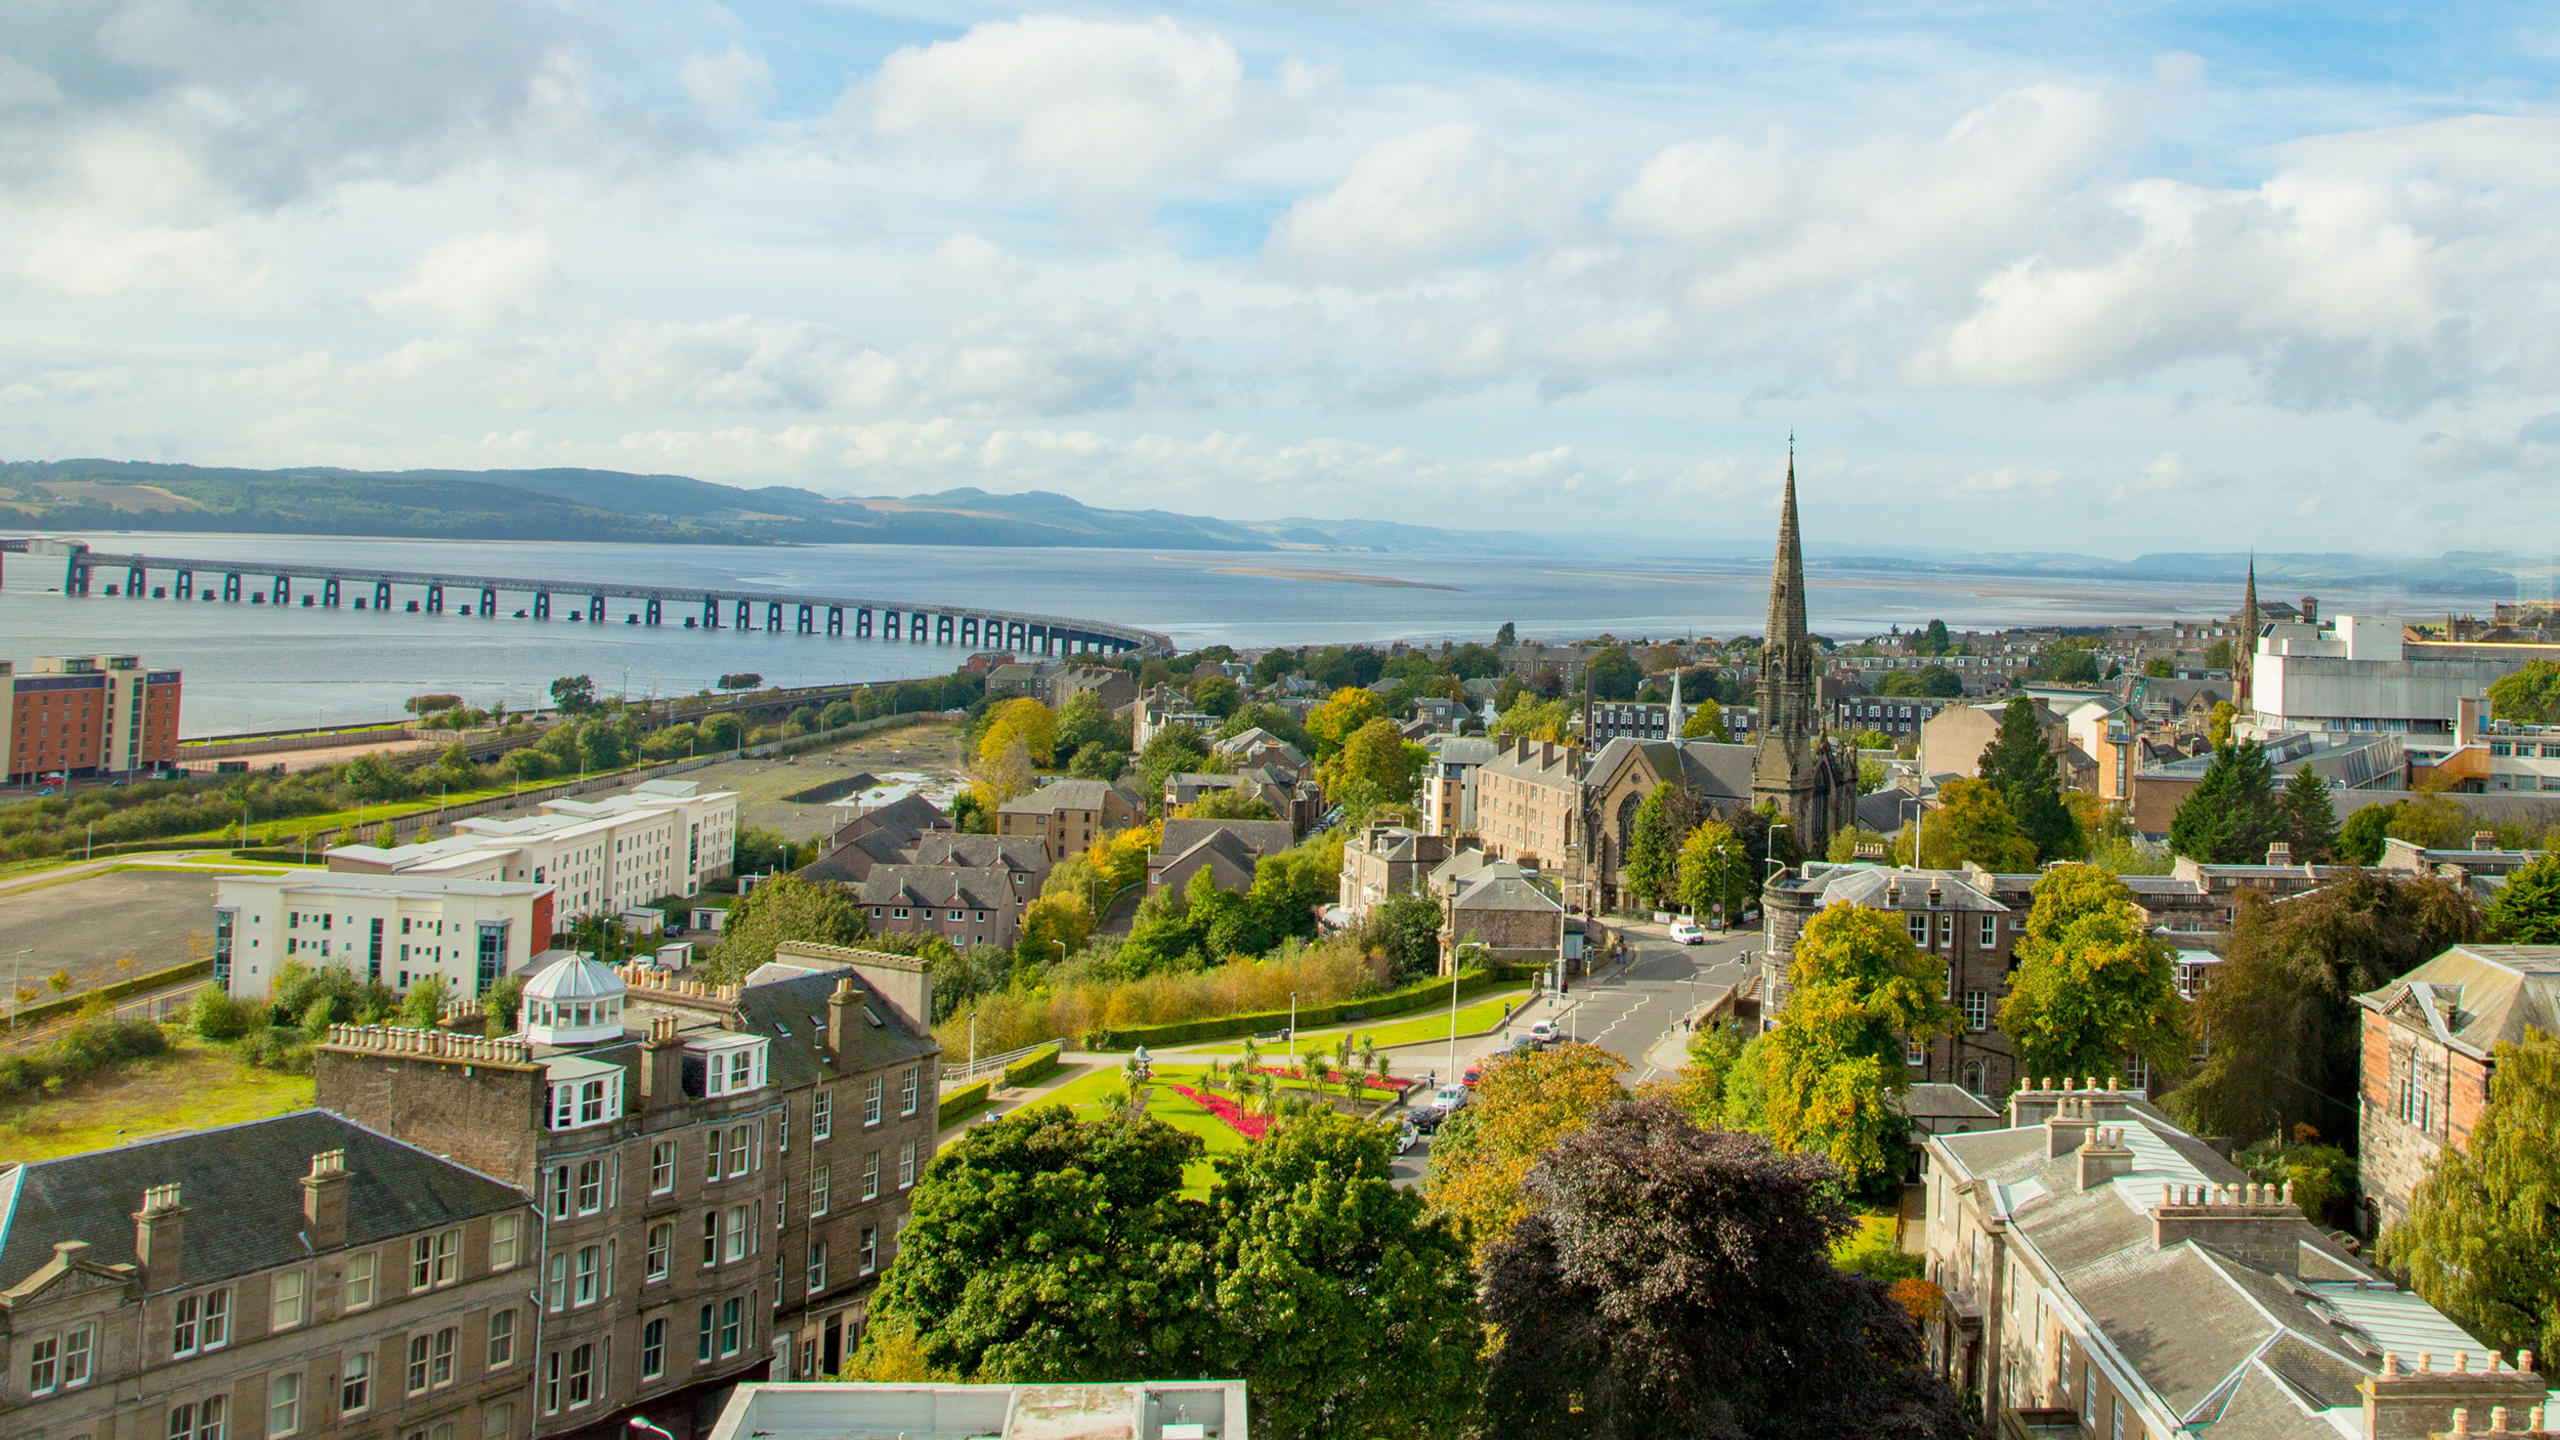 dundee_towercafeview_0.jpg